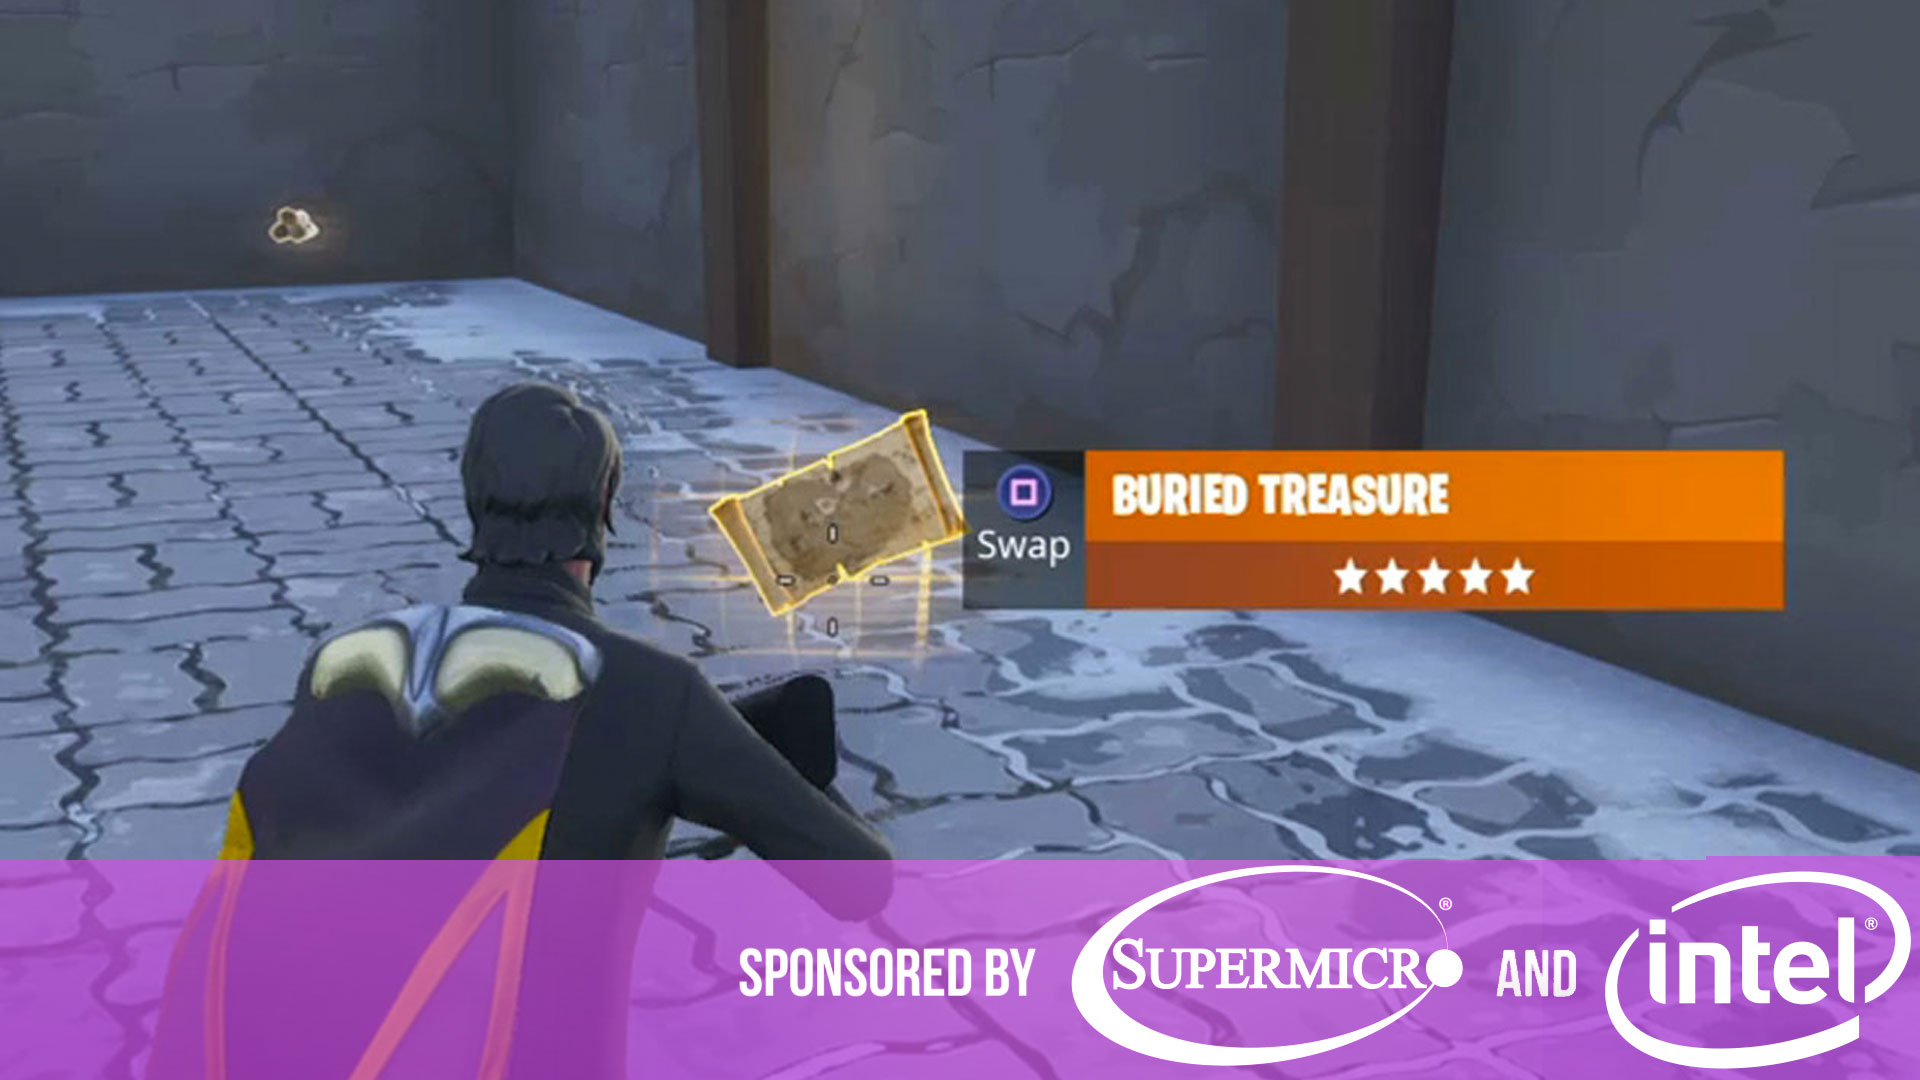 fortnite buried treasure everything you need to know about finding hidden loot - fortnite x marks the spot loot